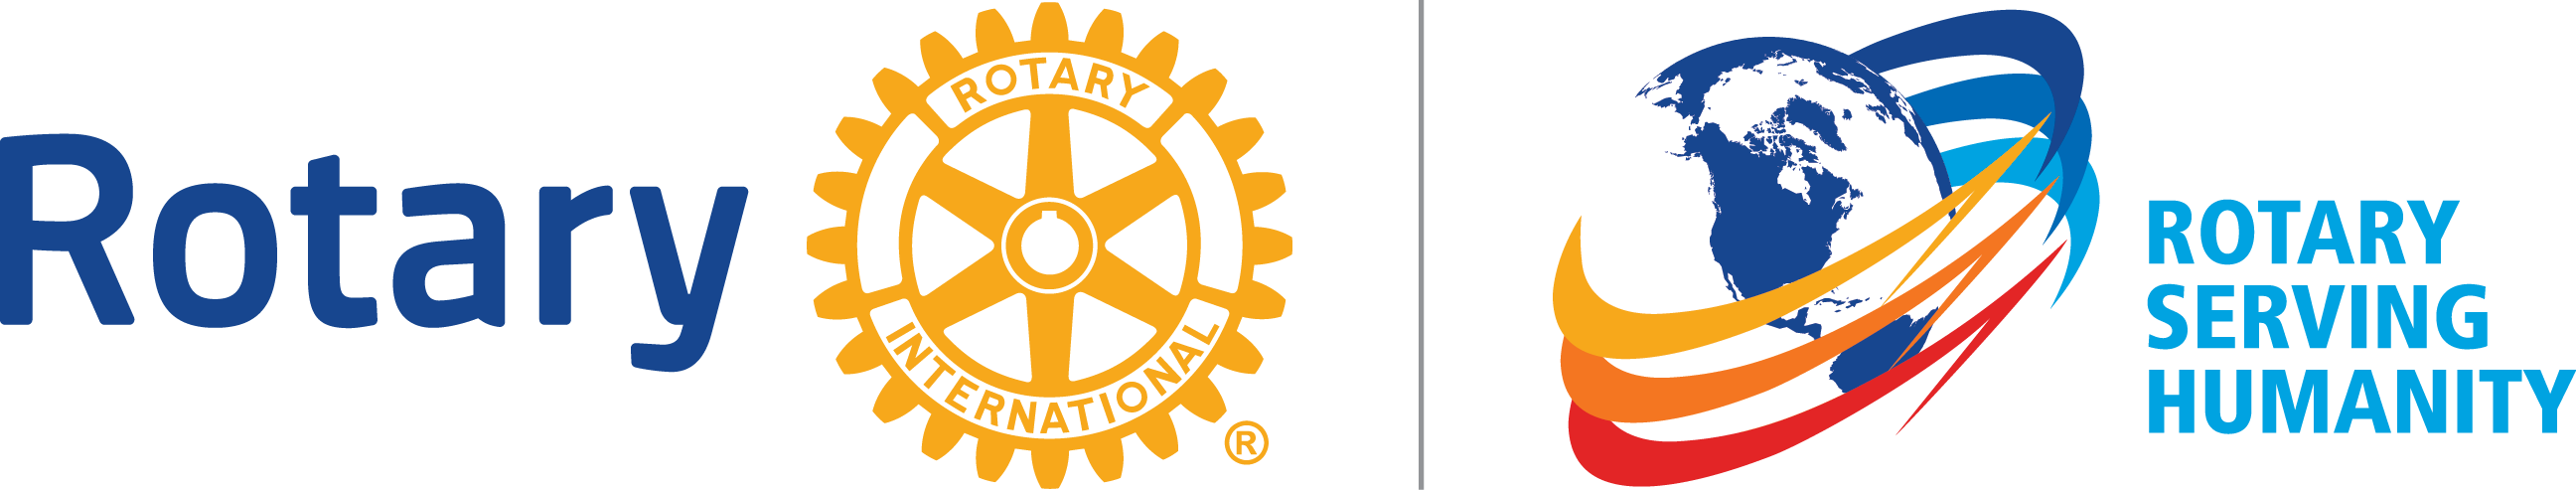 rotary, rotary serving humanıty png logo 4020